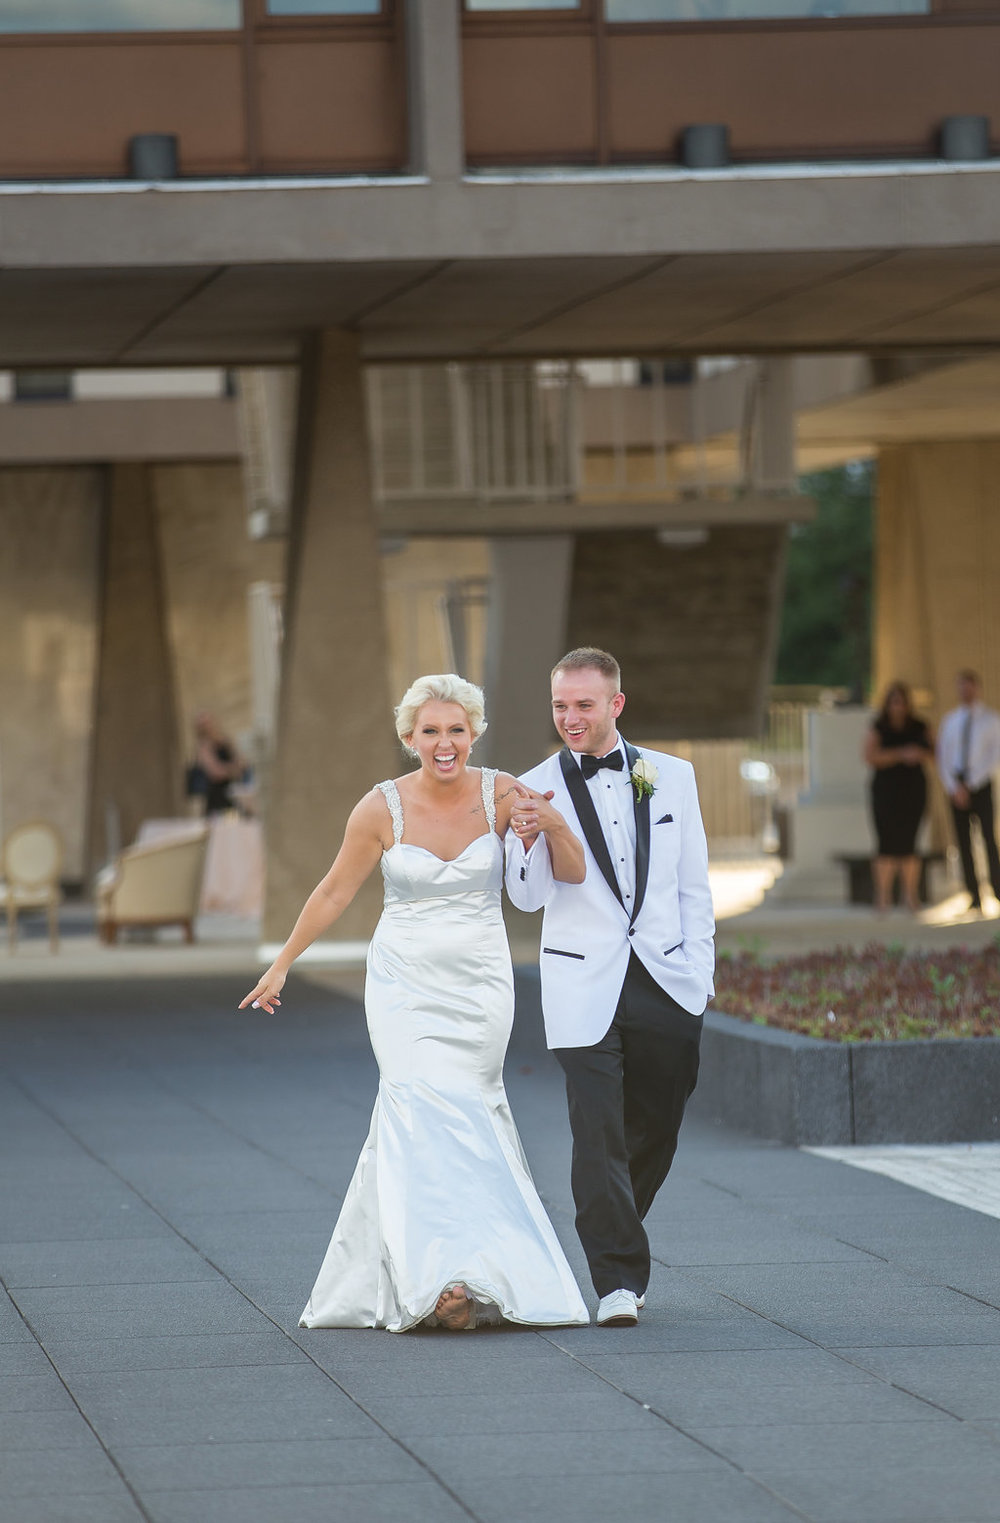 Bride and Groom's grand entrance to reception at The War Memorial Center, Fitch Plaza wedding